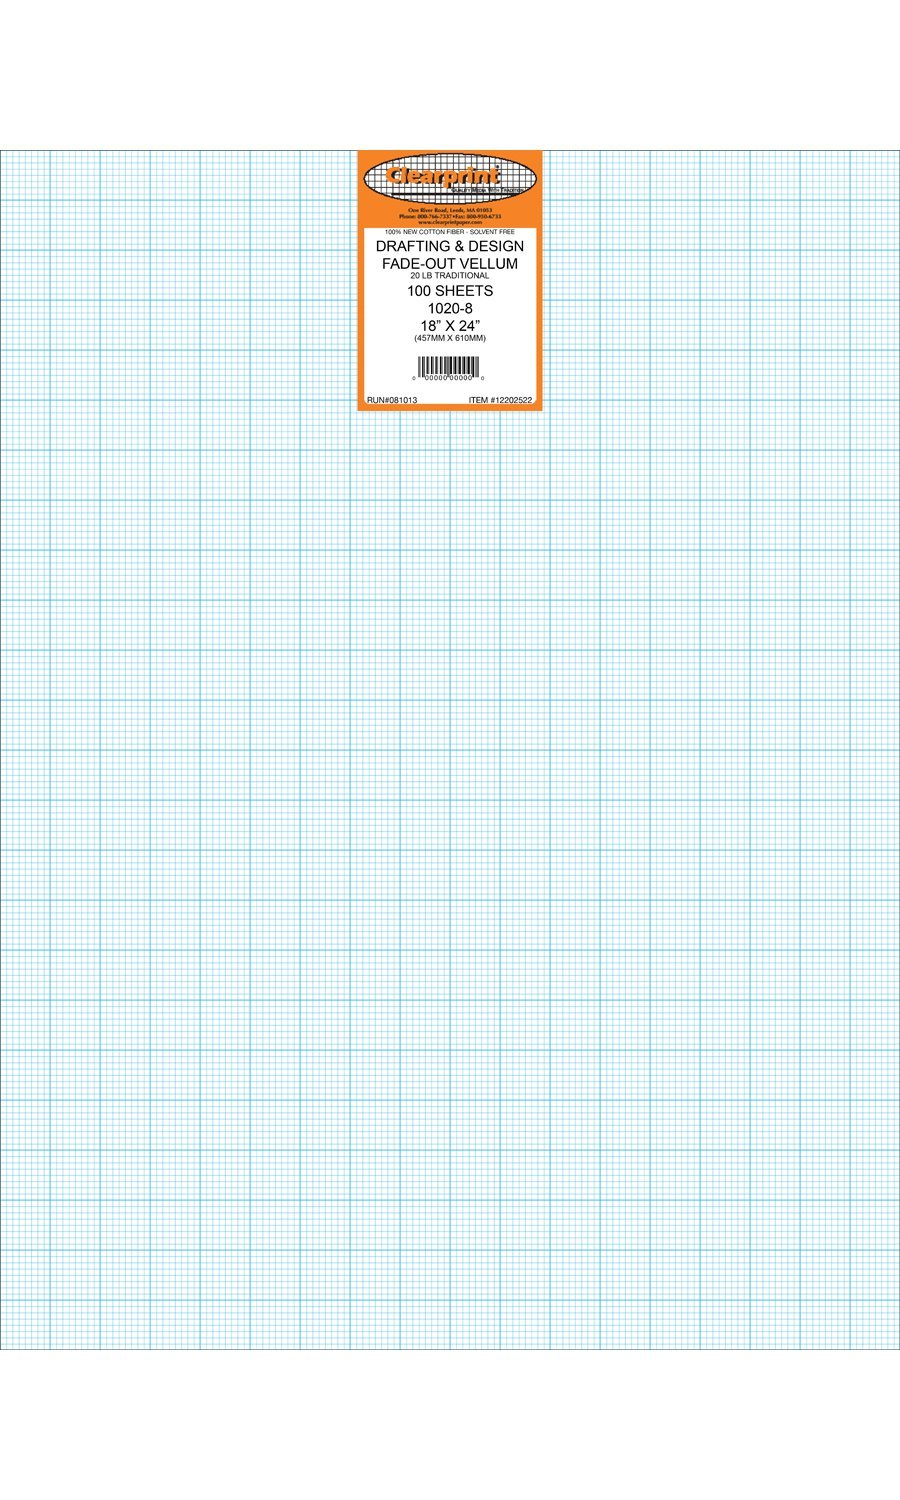 Clearprint 1020H Design Vellum Sheets with Printed Fade-Out 8x8 Grid, 20 Lb., 100% Cotton, 18 x 24 Inches, 100 Sheets Per Pack, 1 Each (12202522) by Clearprint